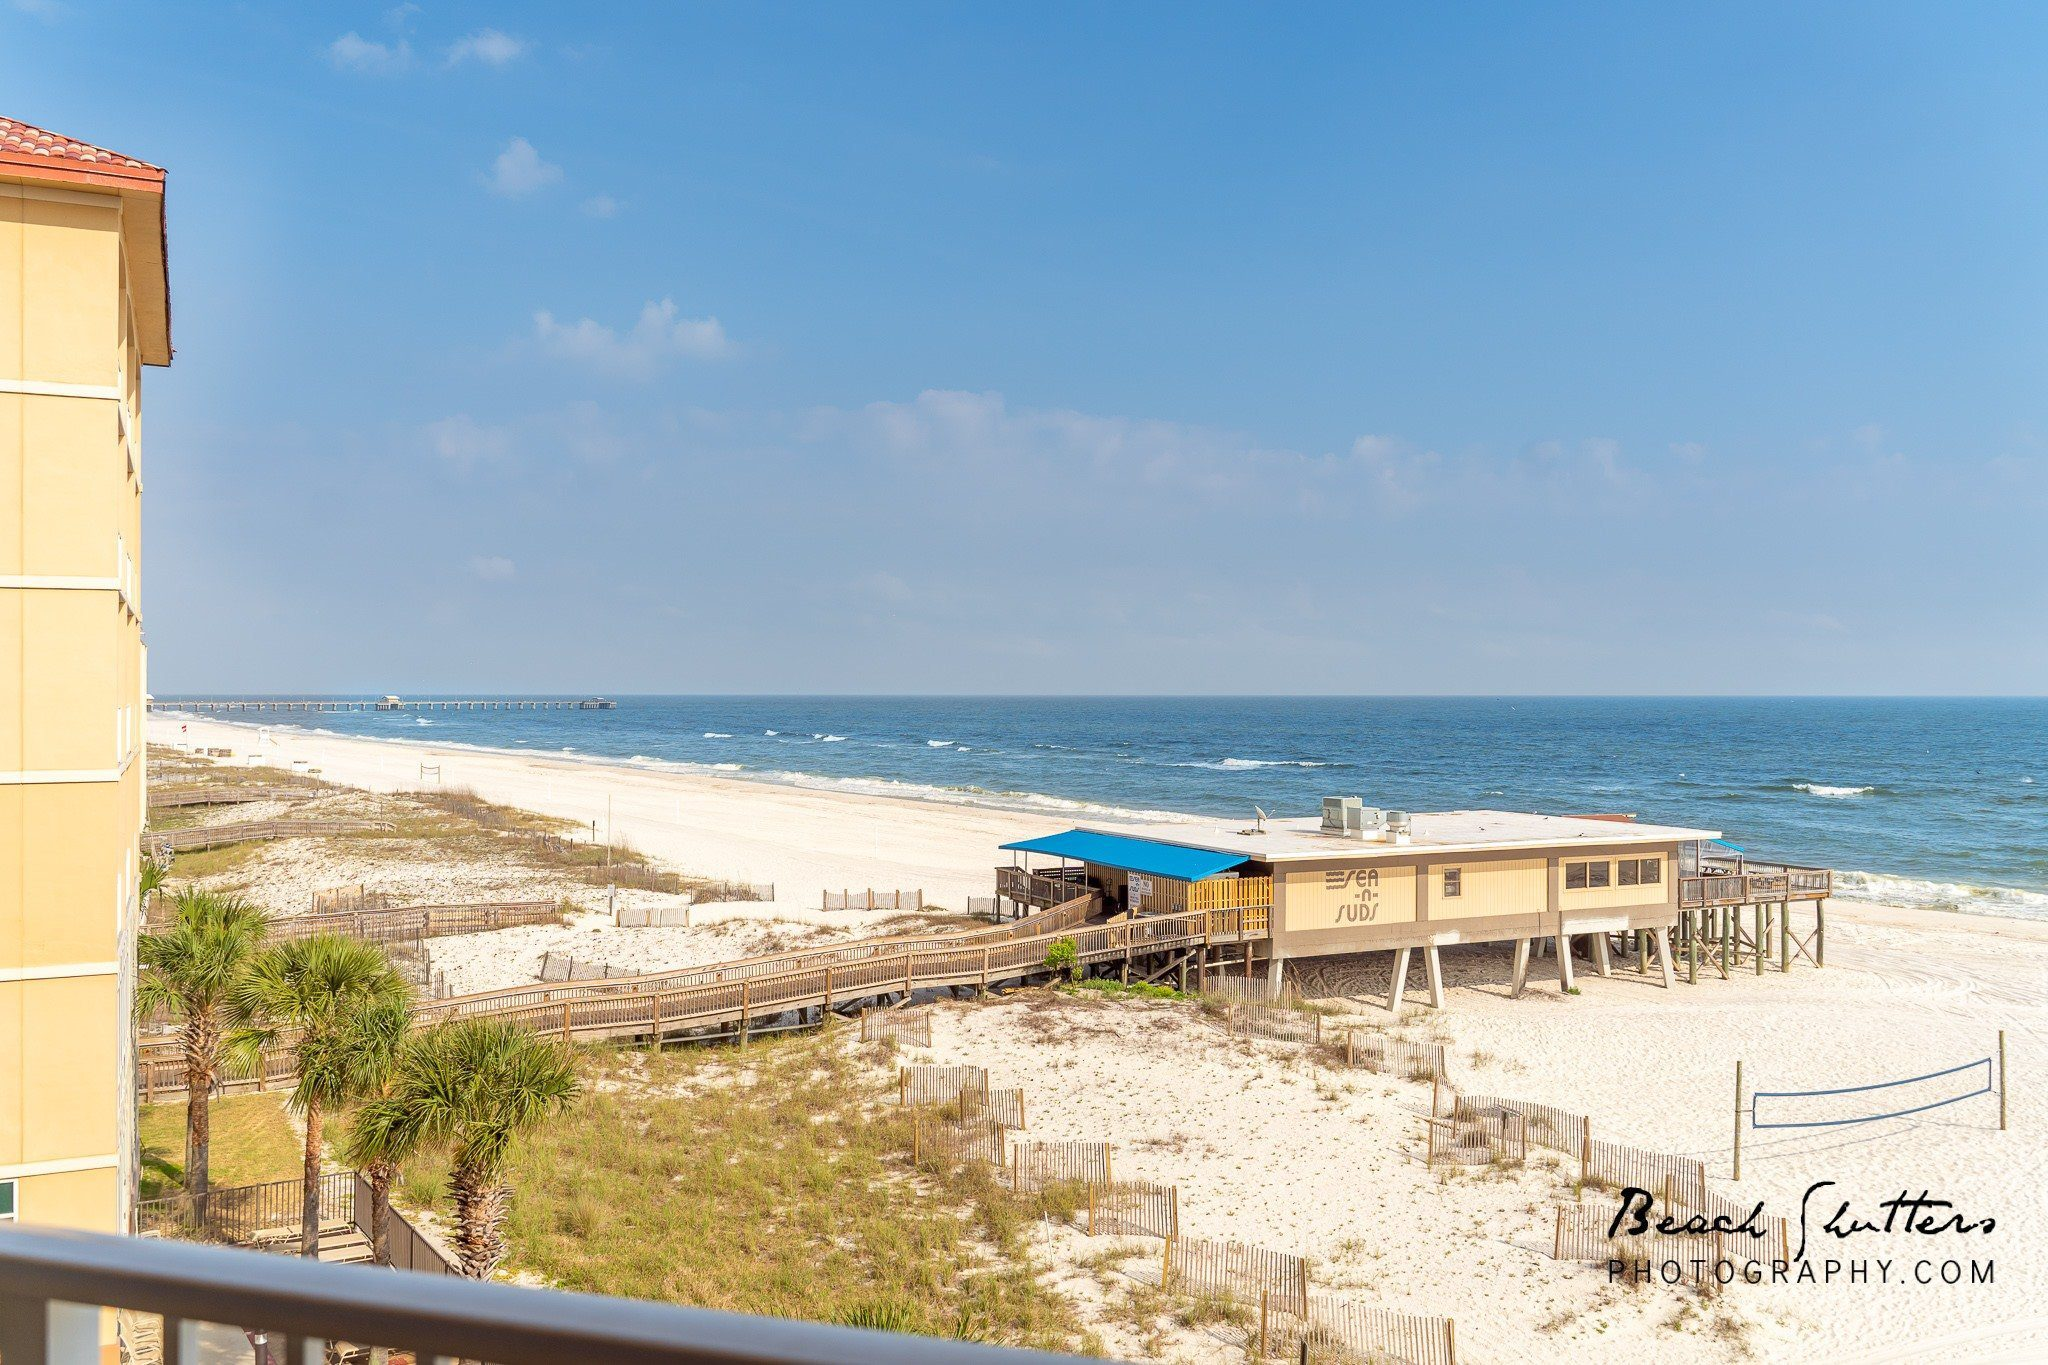 What is going on at the beach in Gulf Shores? Nothing!